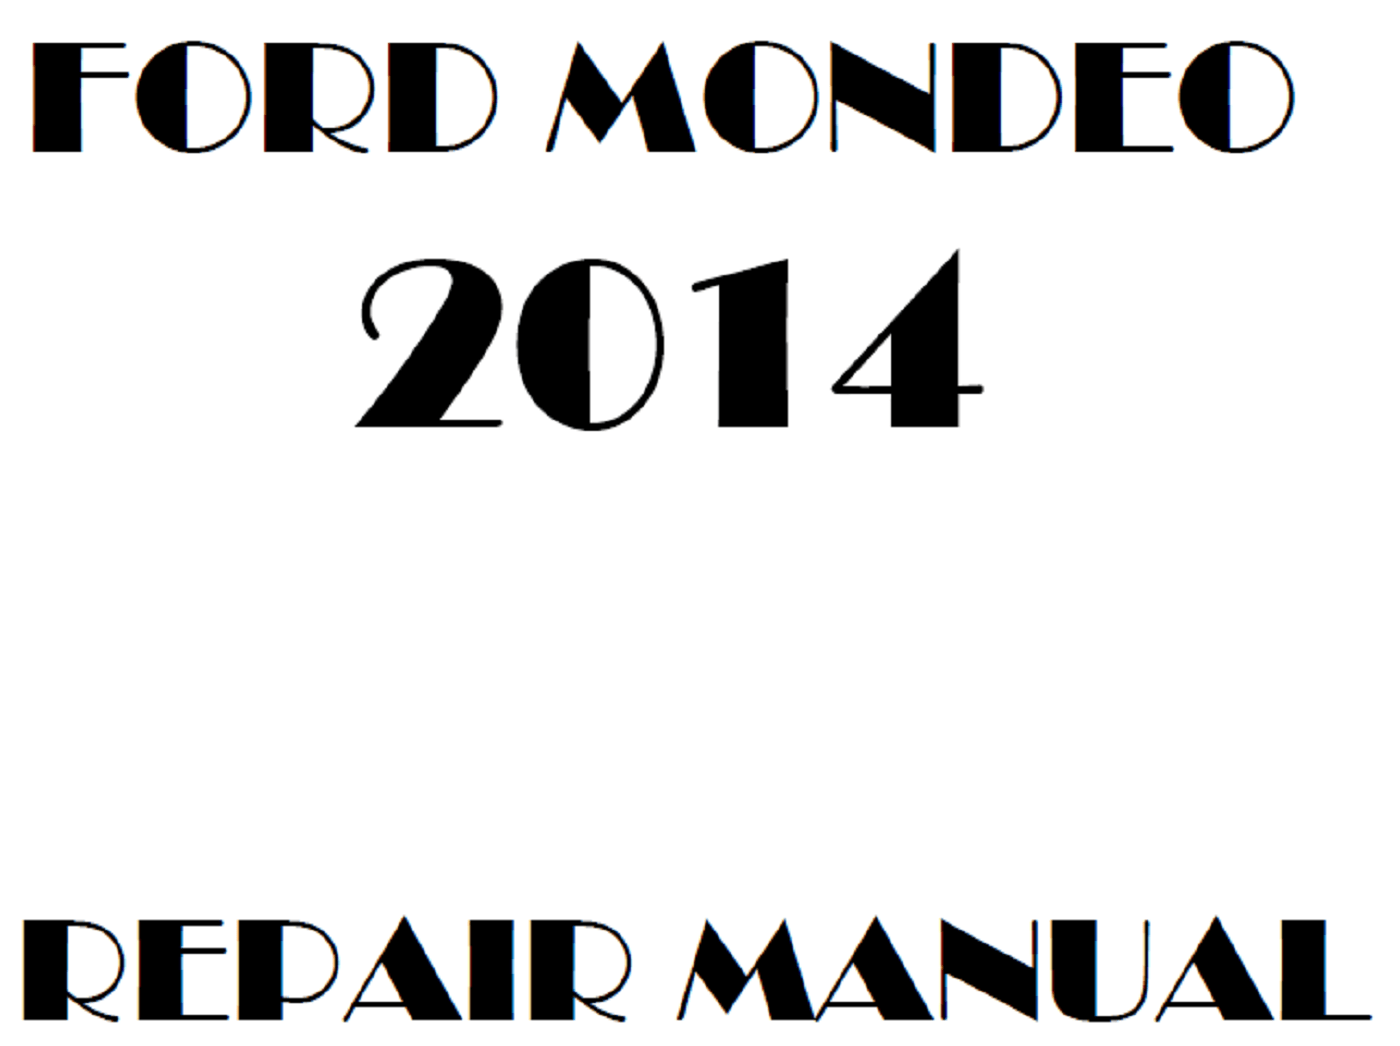 2014 Ford Mondeo repair manual